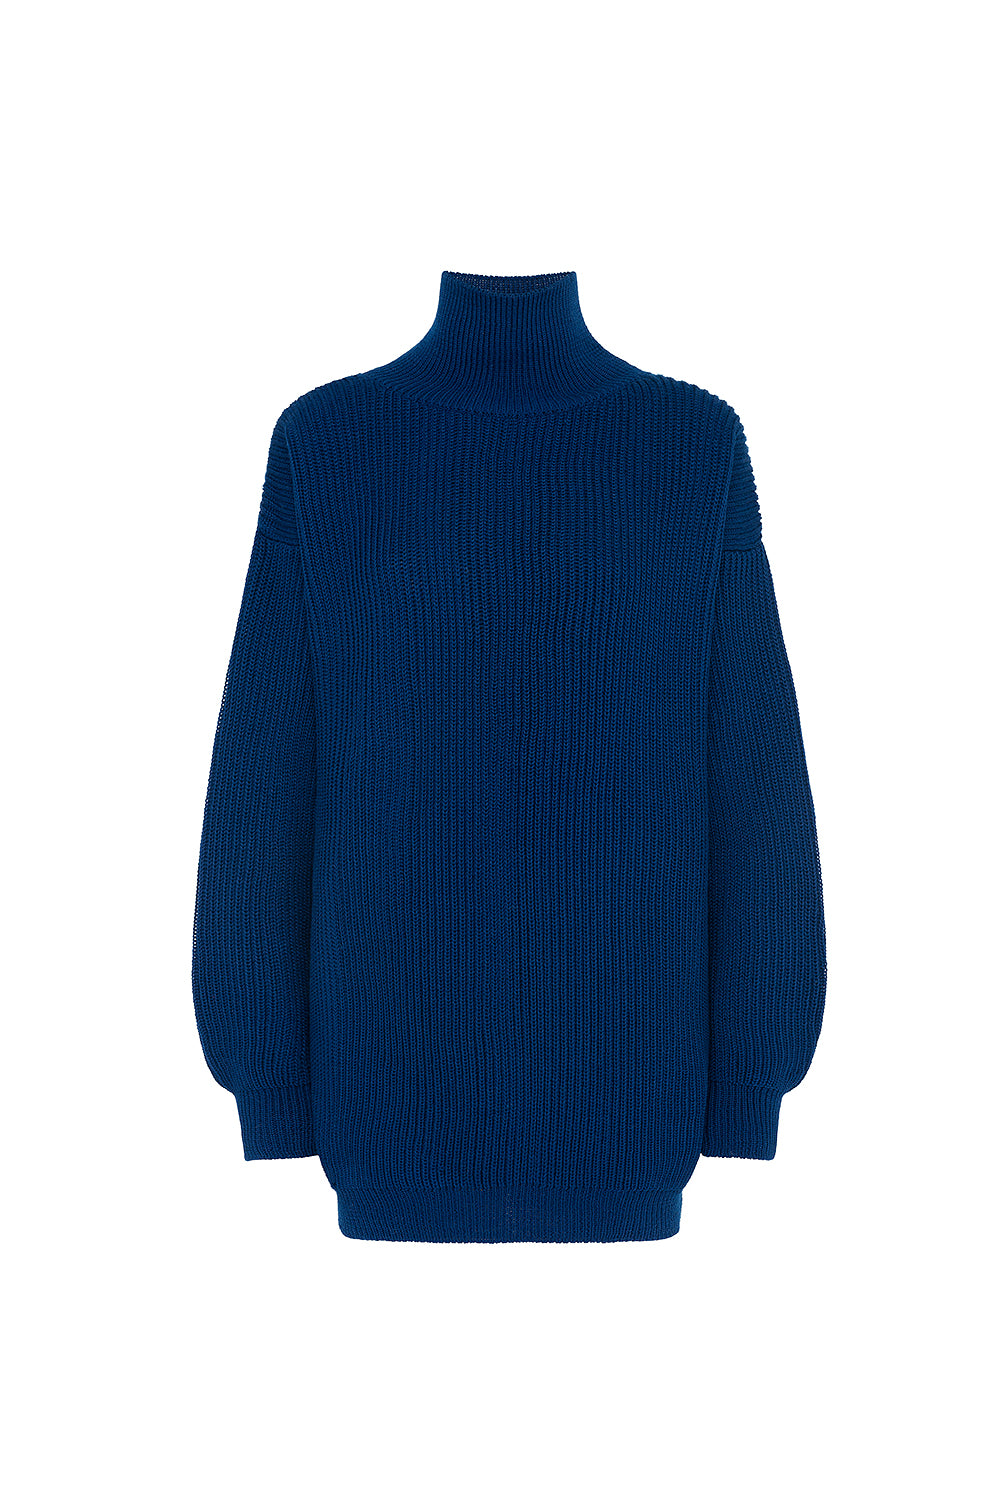 Blue electrician knitted long sweater